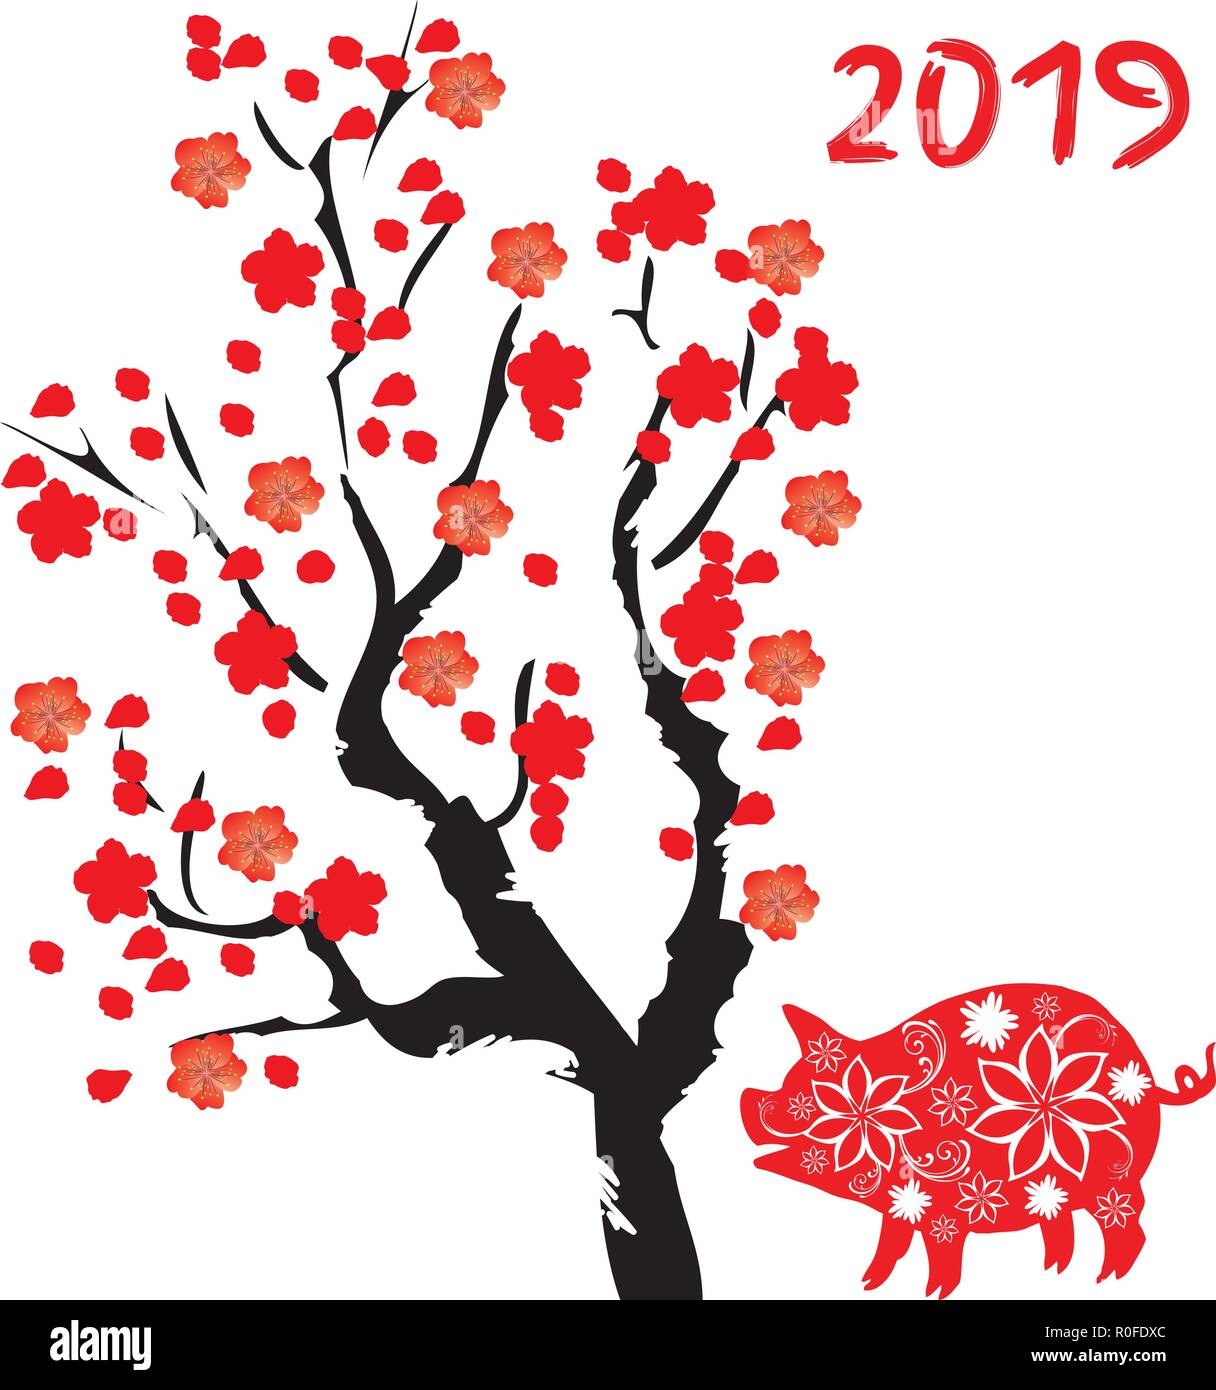 vector illustration of new year background chinese symbol floral pig cherry tree blossom